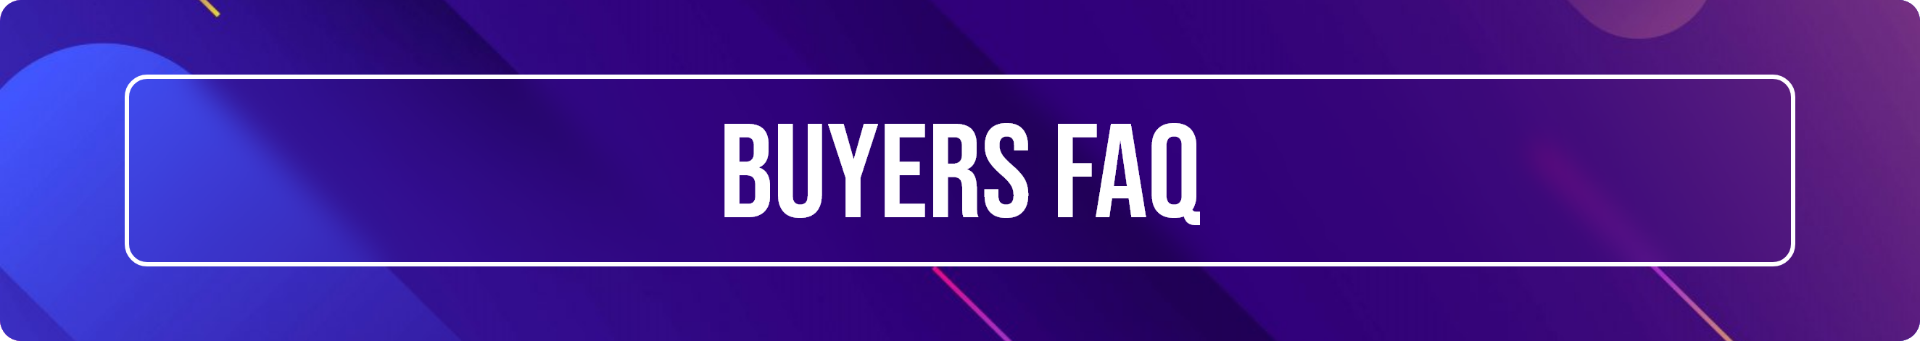 Star Hangar - Buyers Frequently Asked Questions